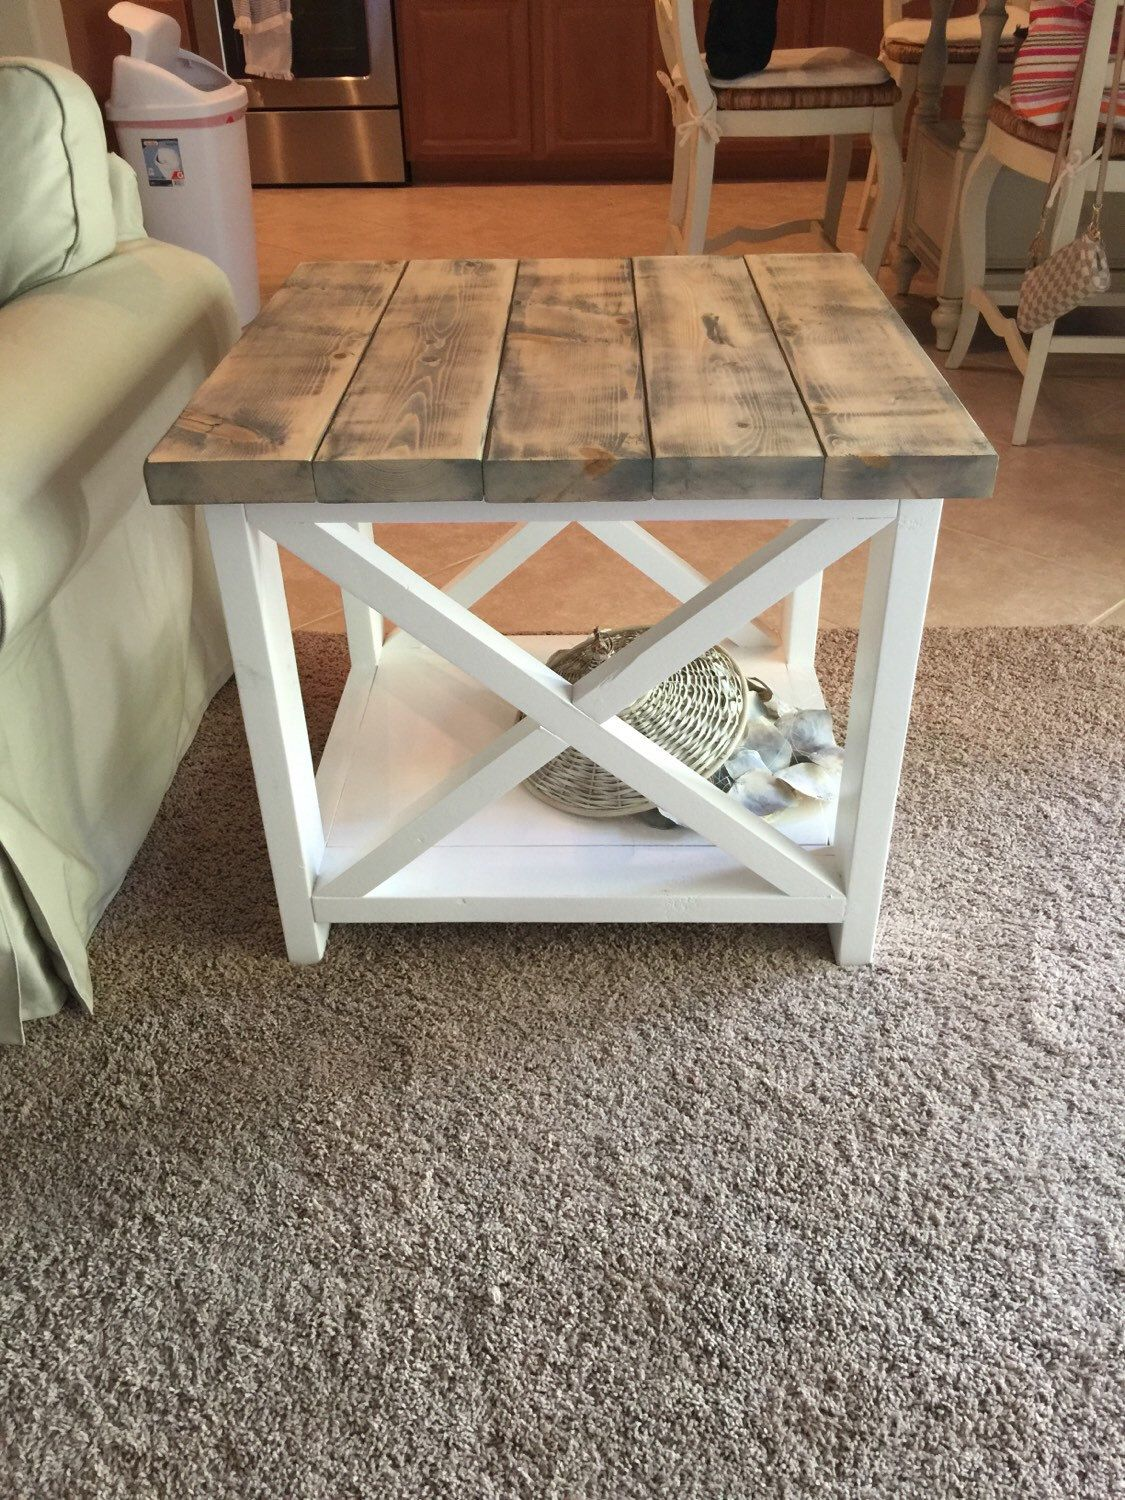 res long end table white dini island antique wood chairs hire rent living dining and whit round poker gar bar rustic fallout los for rentals tables rental angeles whitewash